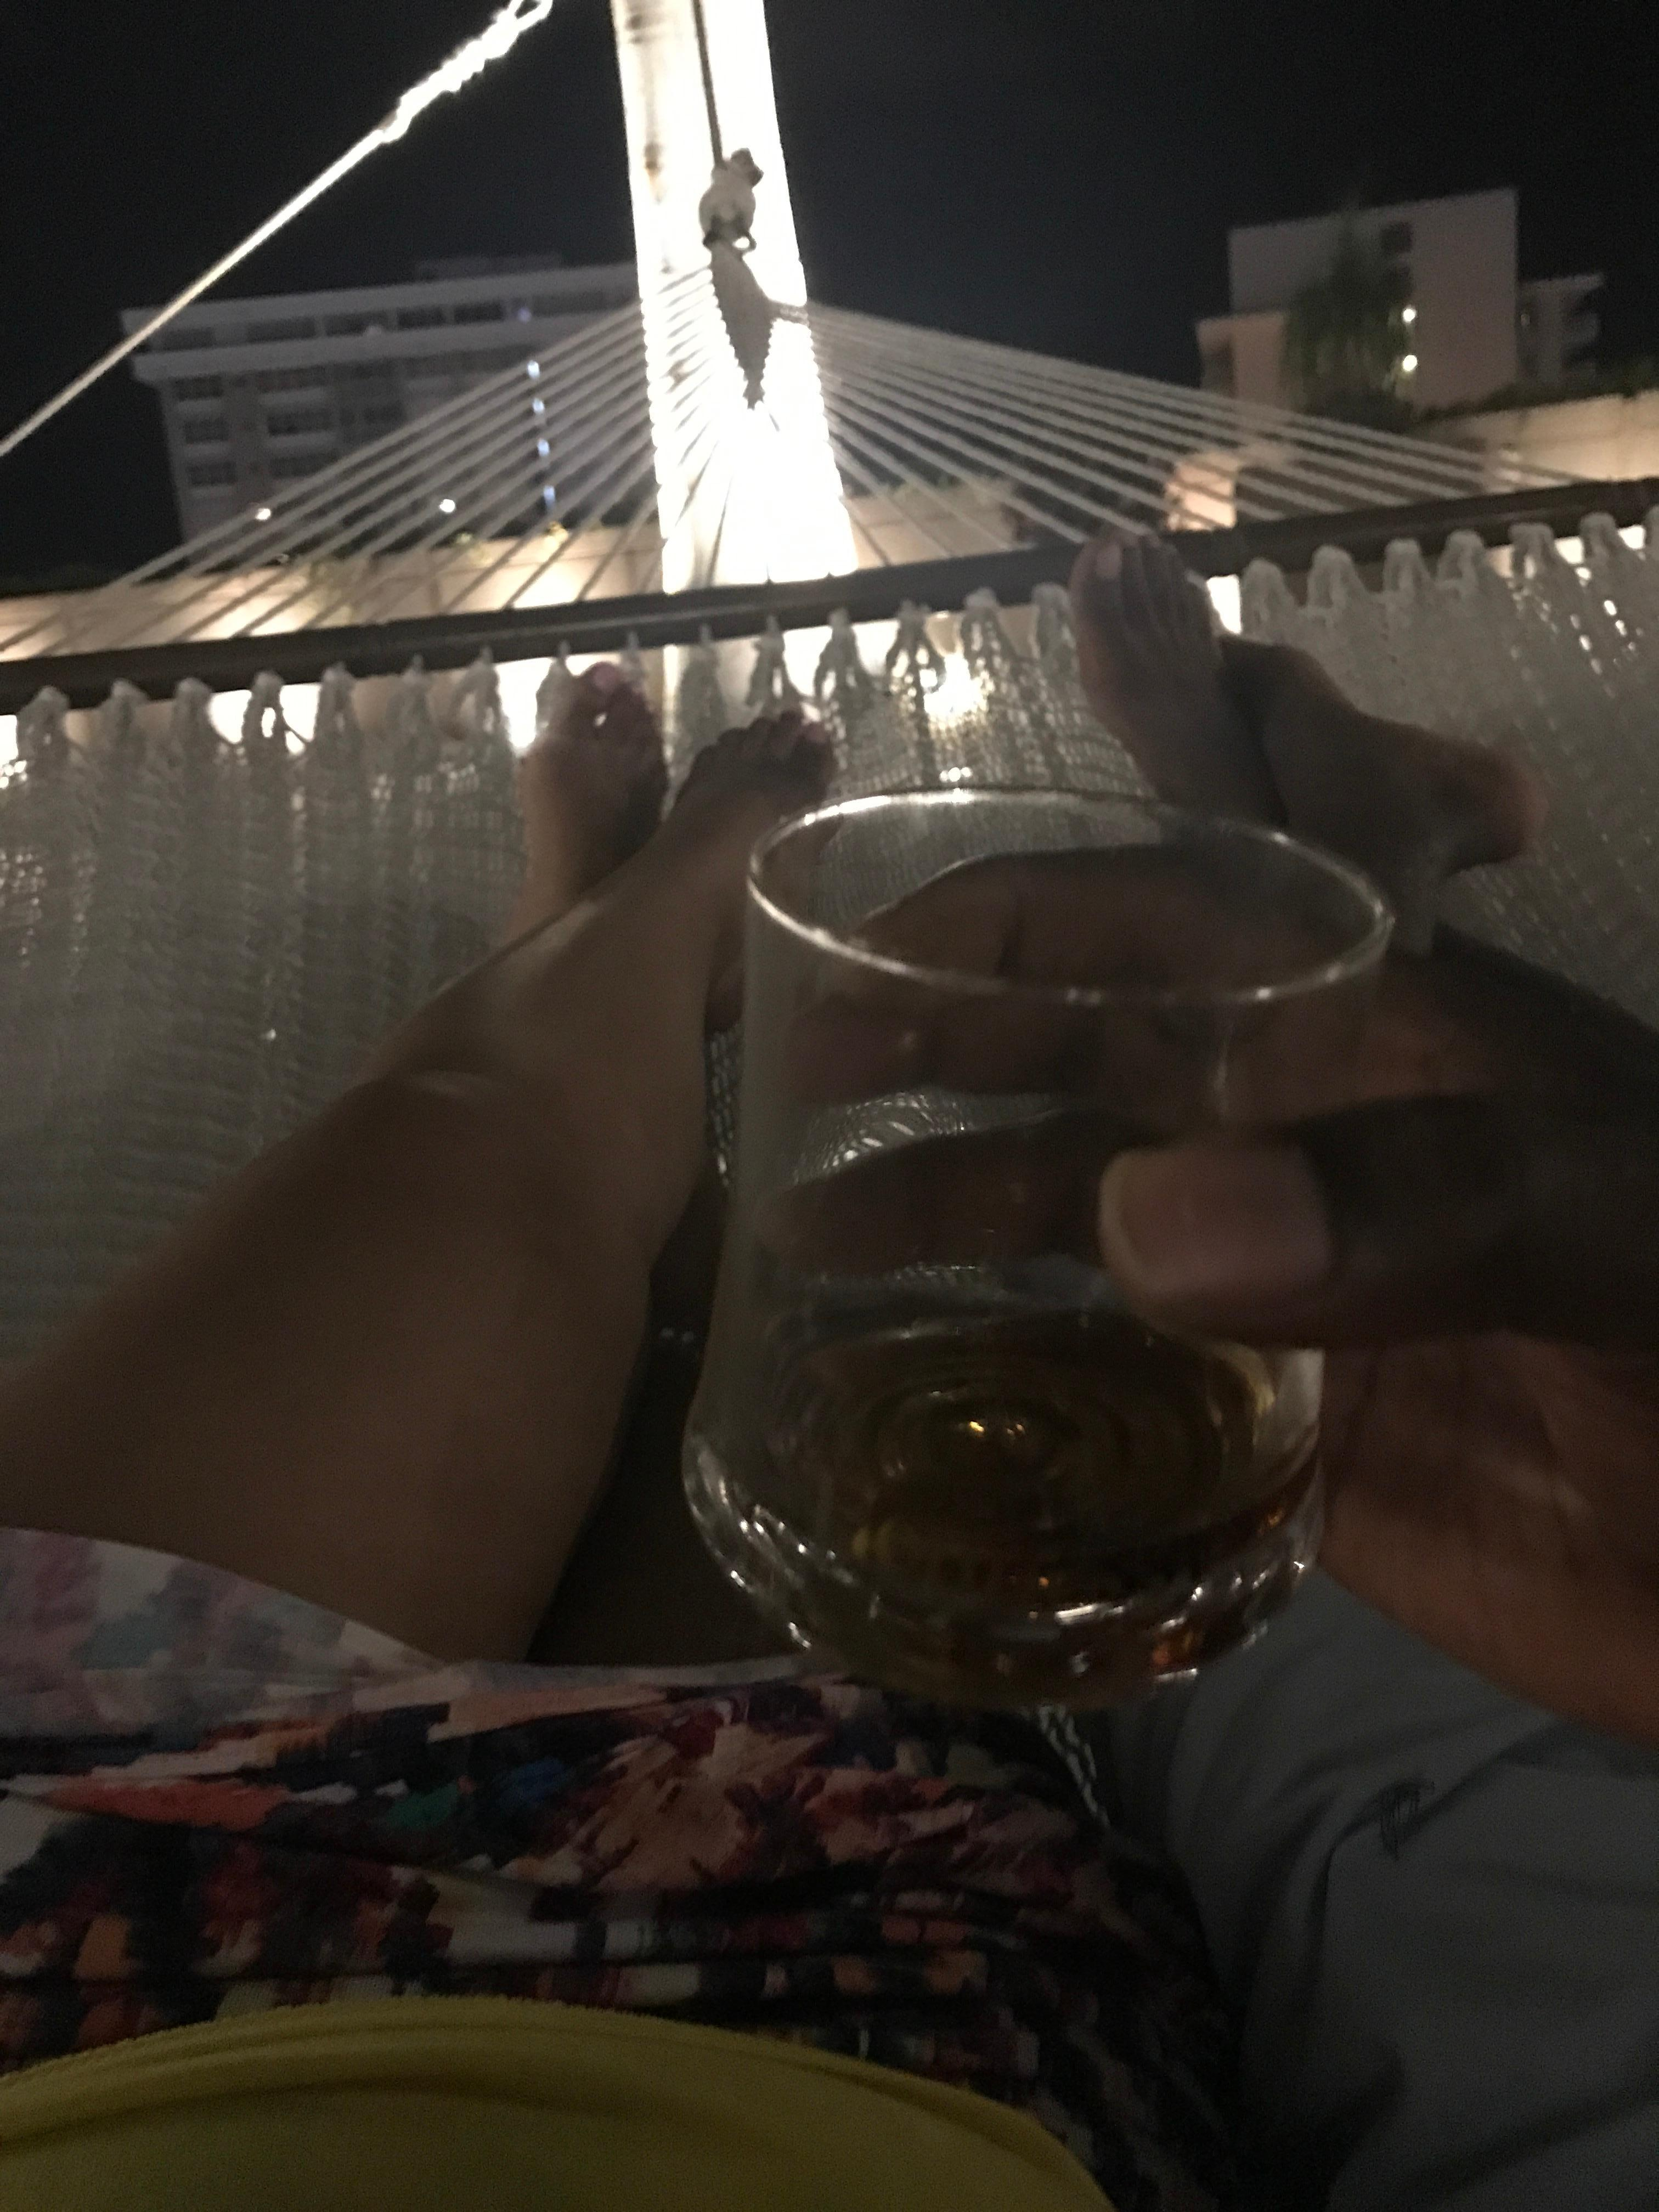 Hubby and I relaxing in a hammock by the pool